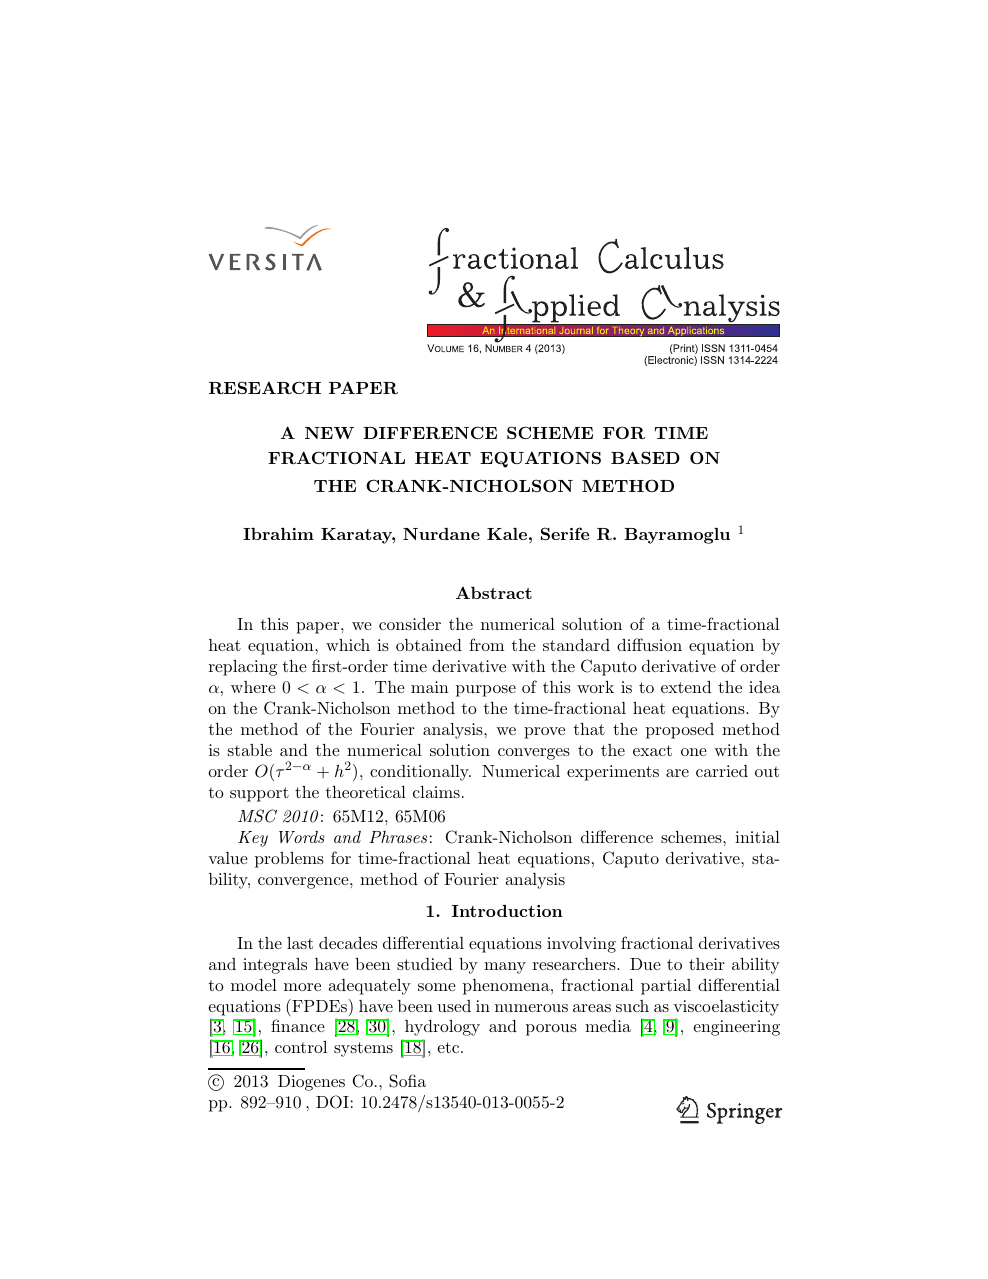 A new difference scheme for time fractional heat equations based on